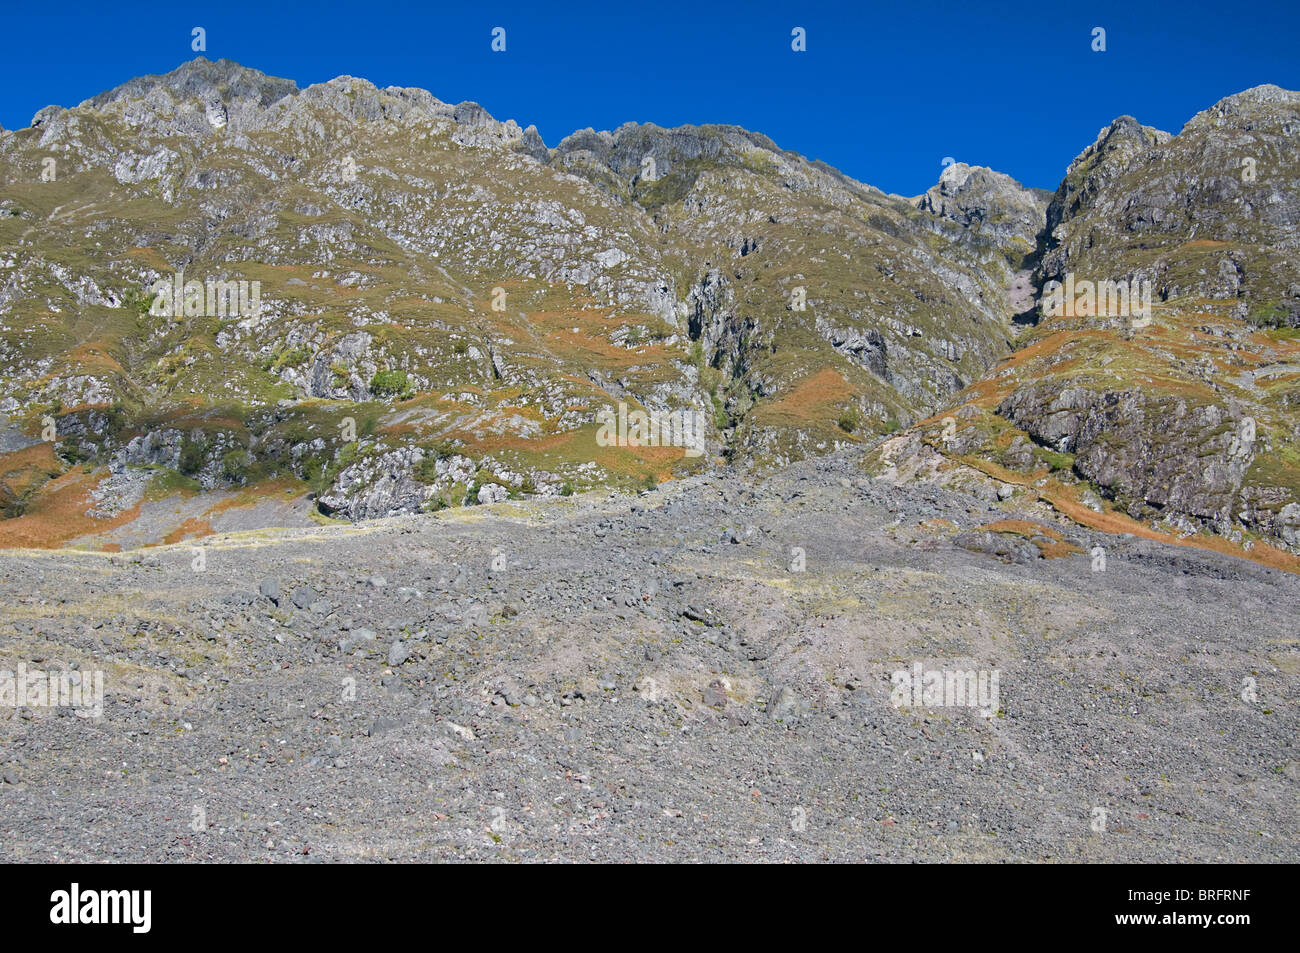 Unstable mountain scree slope below the Aonach Eagach ridge in Glencoe, Inverness-shire, Scotland.  SCO 6757 - Stock Image